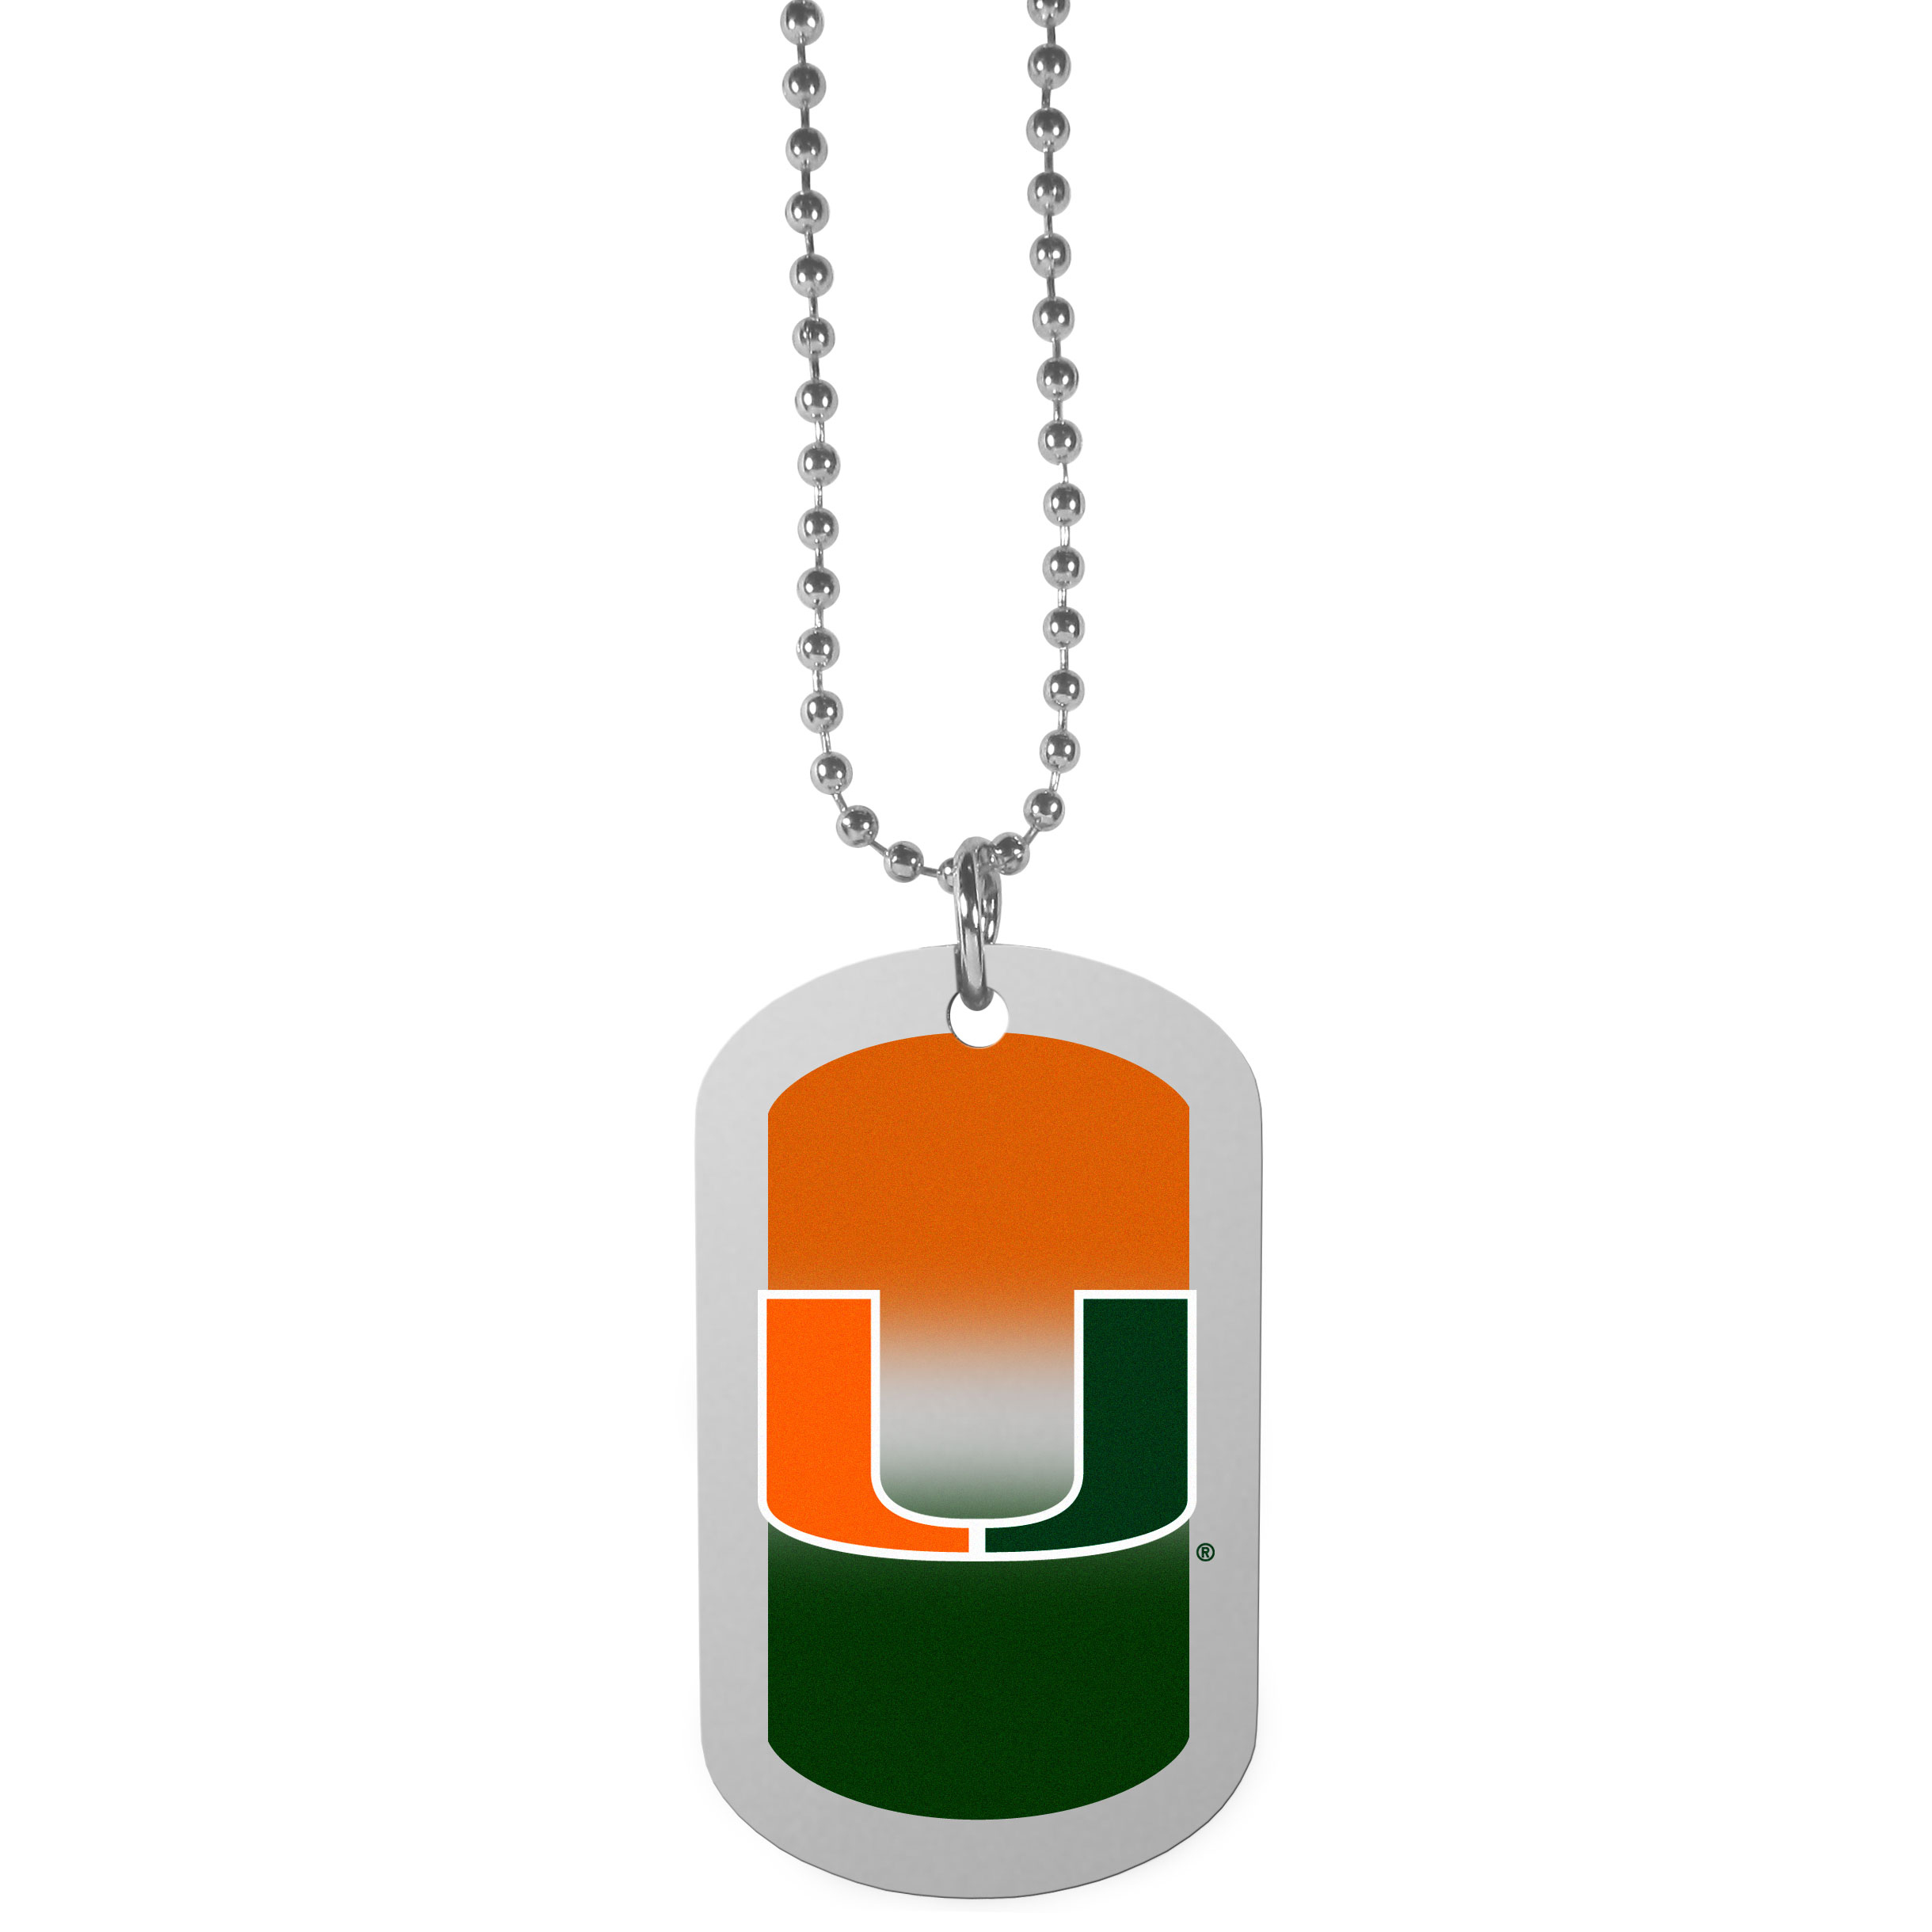 Miami Hurricanes Team Tag Necklace - Dog tag necklaces are a fashion statement that is here to stay. The sporty version of the classic tag features a gradient print in team colors featuring a full color team logo over a high polish tag to create a bold and sporty look. The tag comes on a 26 inch ball chain with a ball and joint clasp. Any Miami Hurricanes would be proud to wear this attractive fashion accessory.